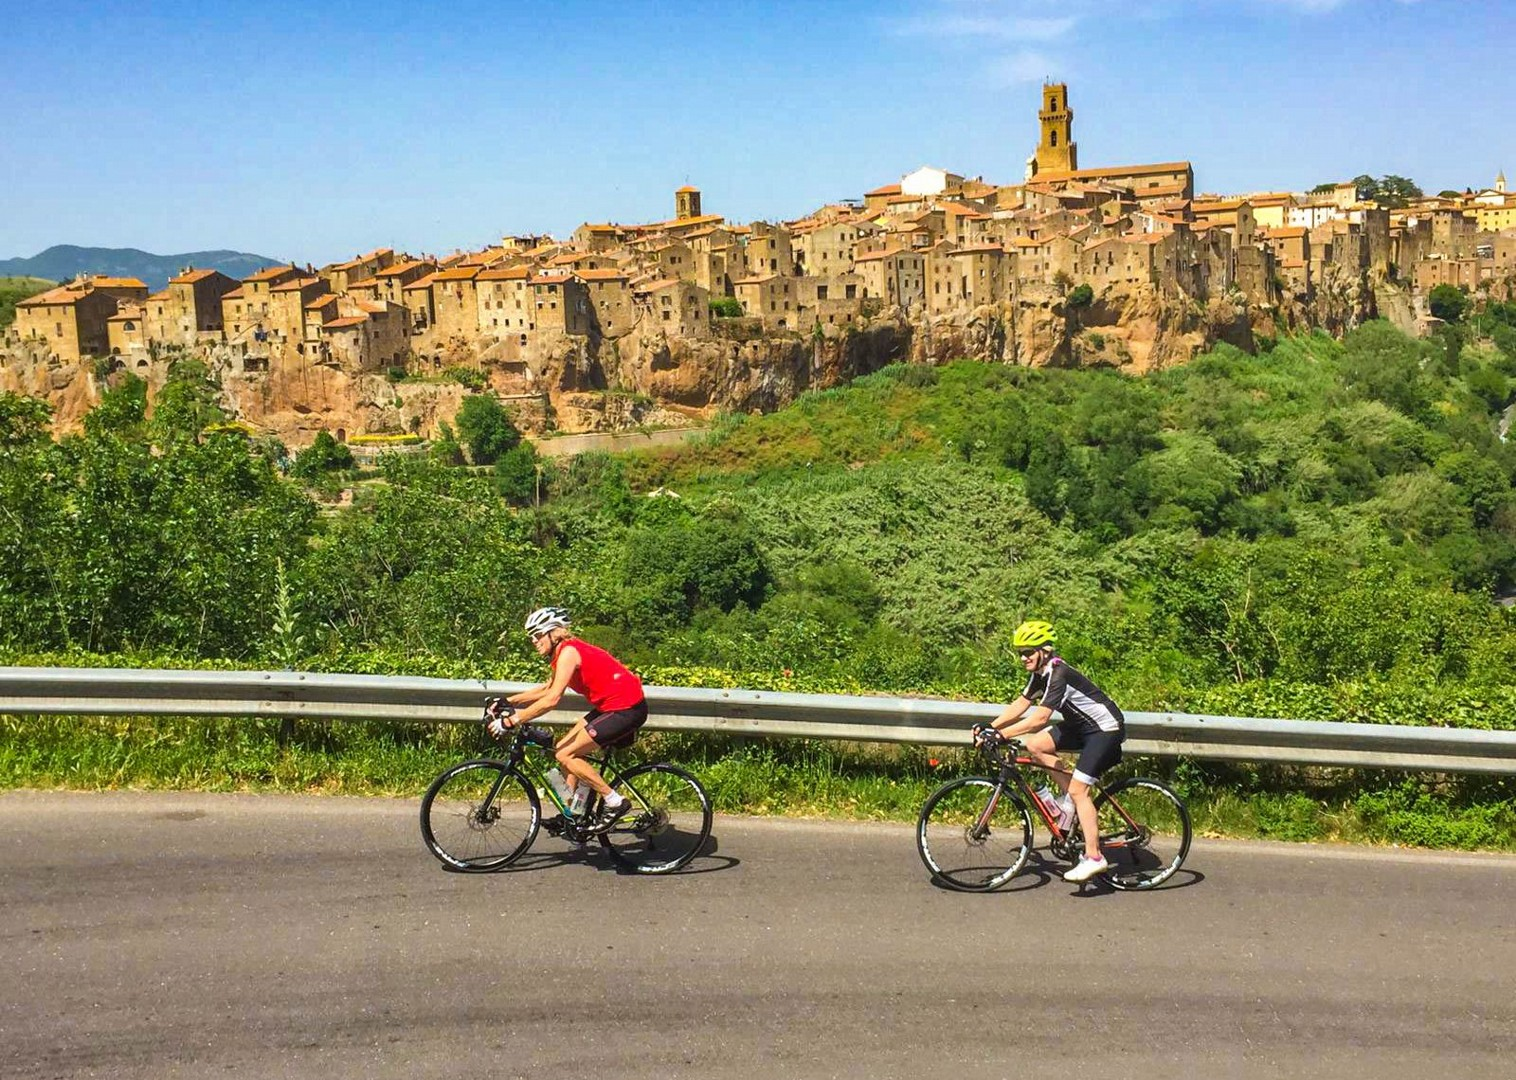 ladriatico-al-tirreno-bike-cycling-guided-road-with-saddle-skedaddle-tour.jpg - NEW! Italy - Coast to Coast - L'Adriatico al Tirreno - Road Cycling